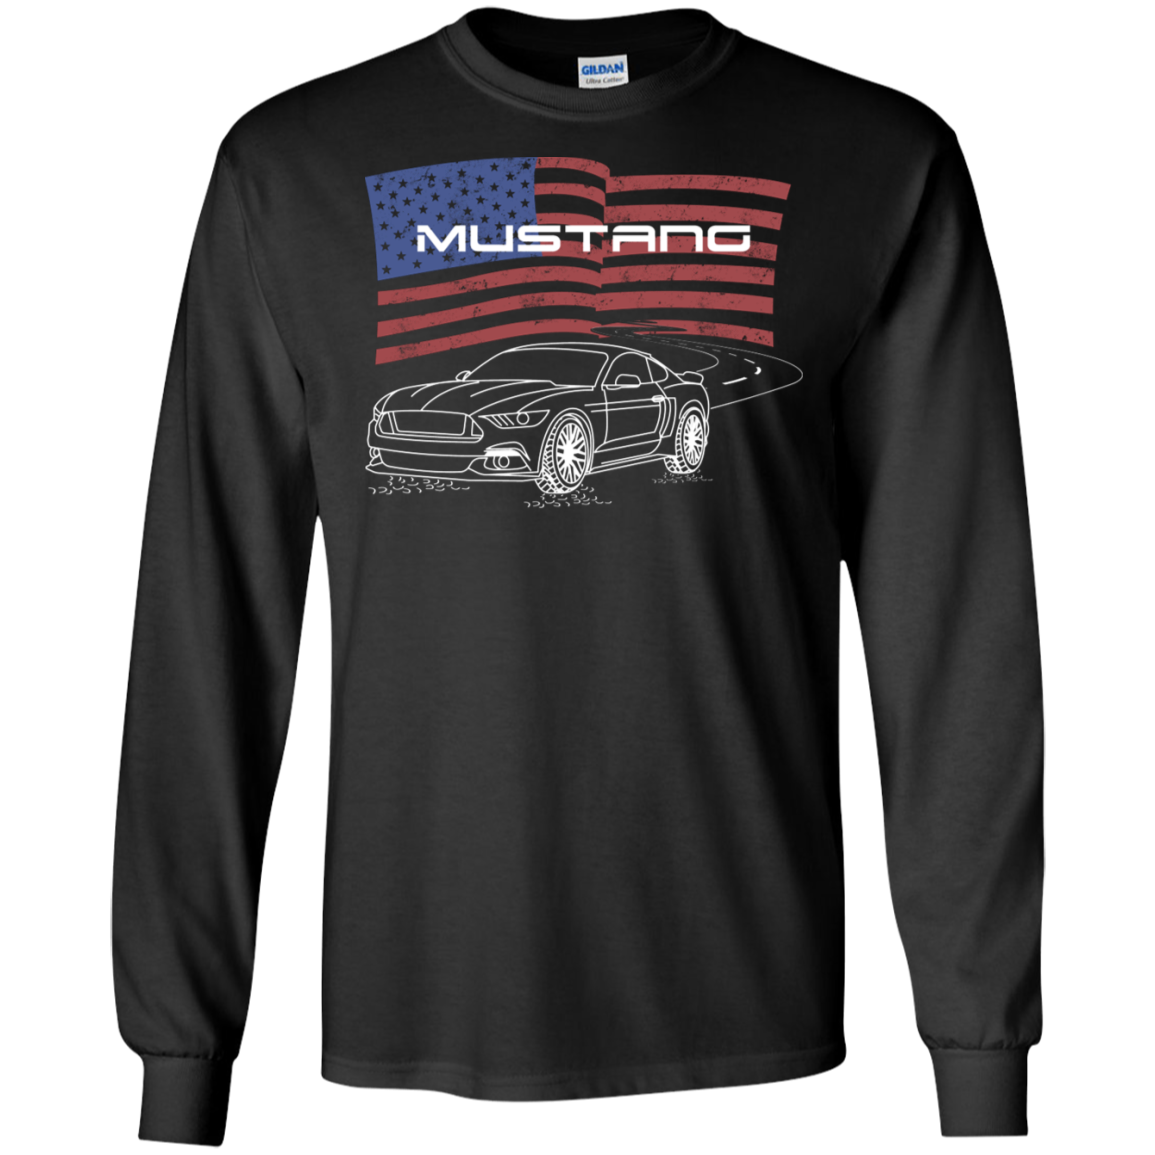 S550 Ford Mustang 5 0 Coyote 2 3 Ecoboost American Flag Long Sleeve T Shirt